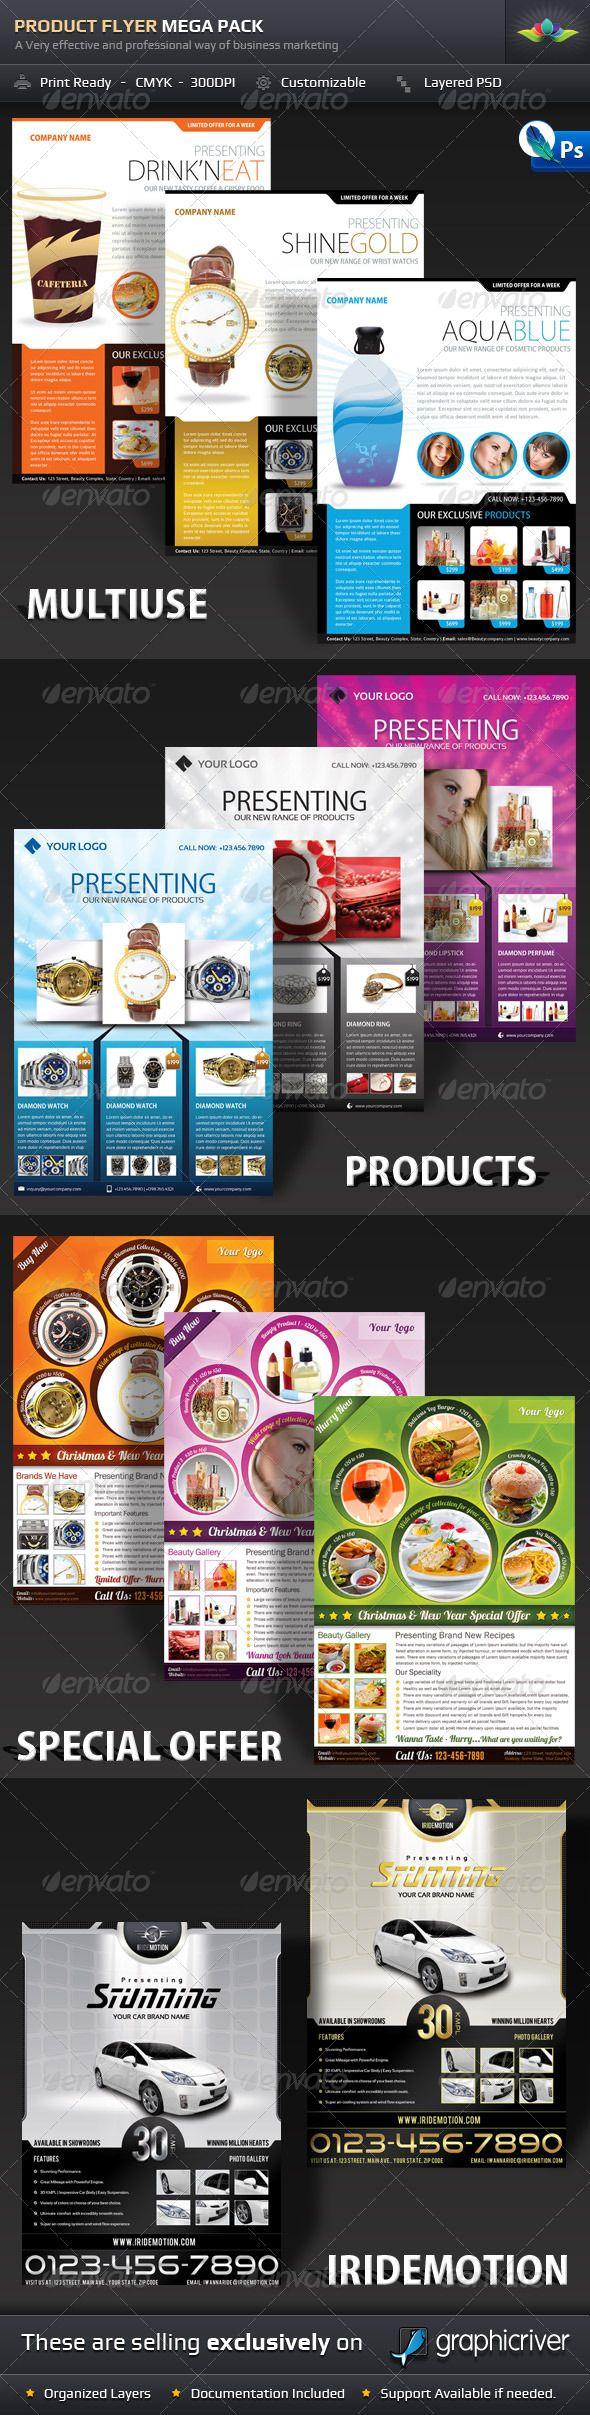 Product Flyer Mega Pack  Marketing Flyers Brochures And Postcard